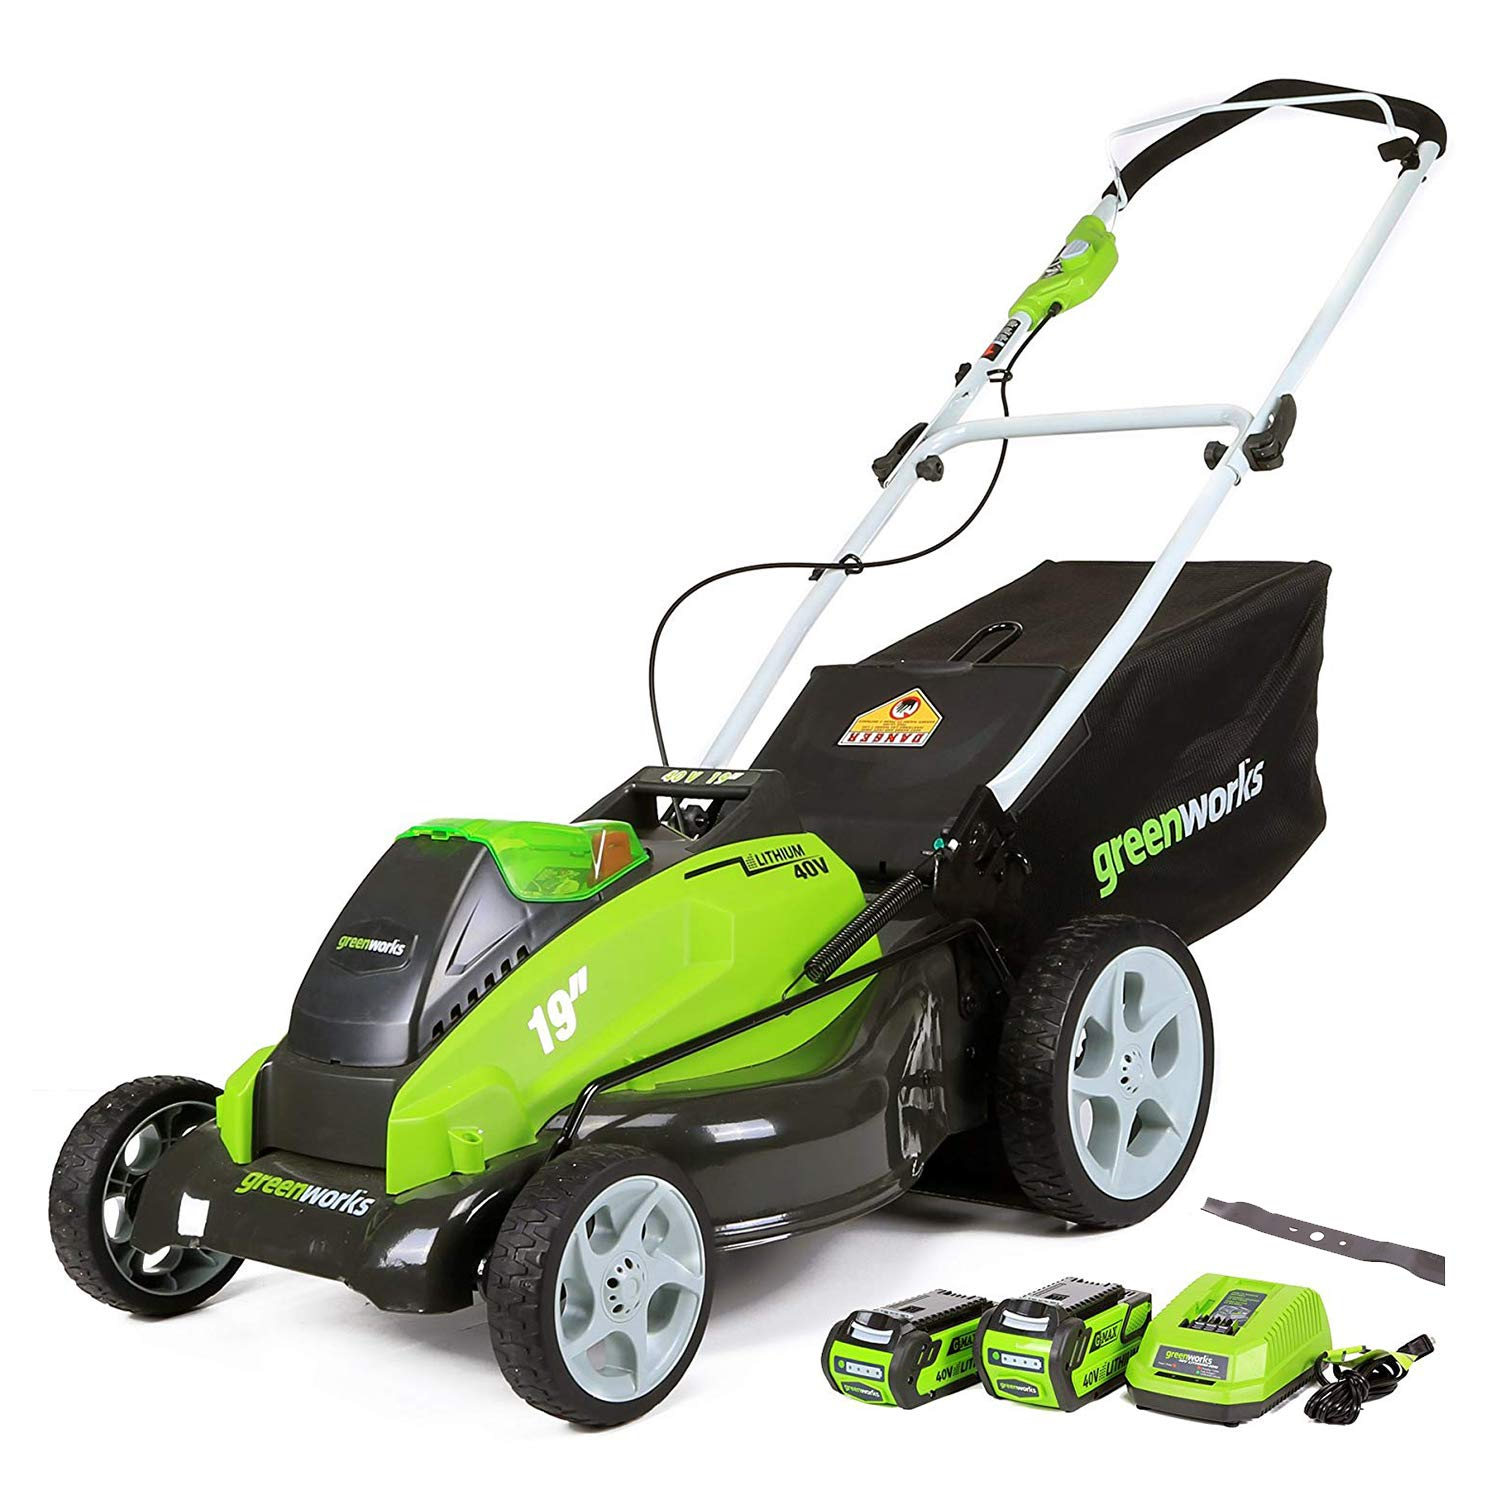 GreenWorks 19-Inch 40V Cordless Lawn Mower + Extra Blade, (1) 4Ah (1) 2Ah Batteries and Charger Included 2519202AZ by Greenworks